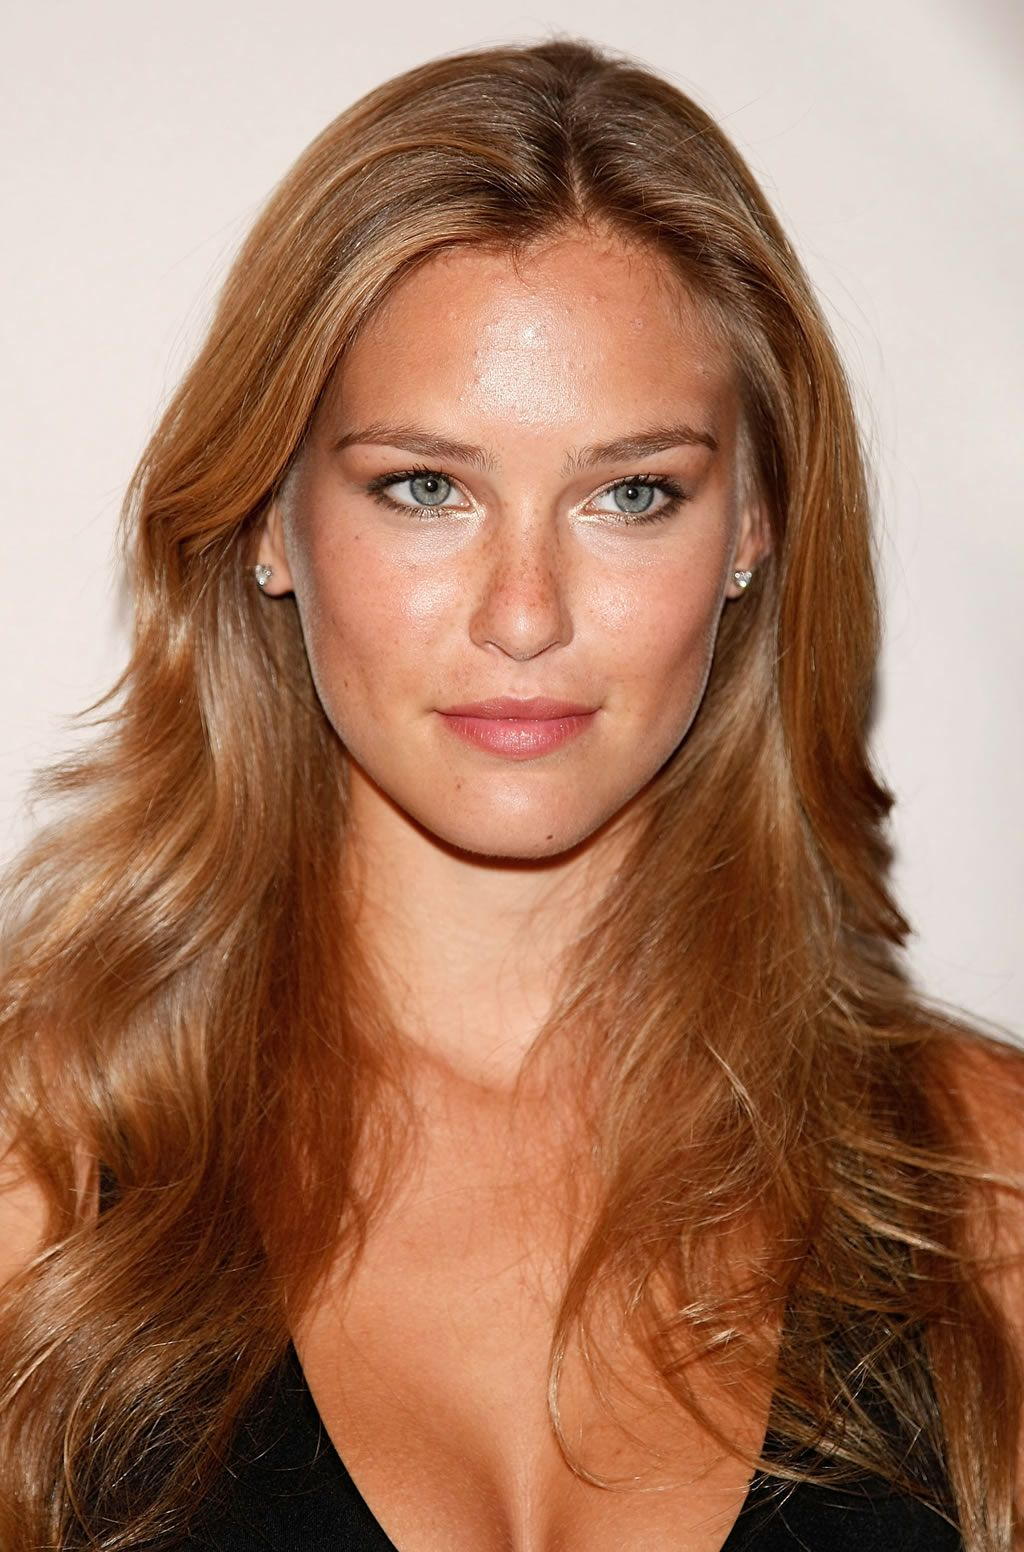 High Forehead Blue Eyes Small Nose Broad Face Clear Skin Full Lips Small Chin Narrow Jaw Wide Set Brazilian Hair Bar Refaeli Weave Hairstyles